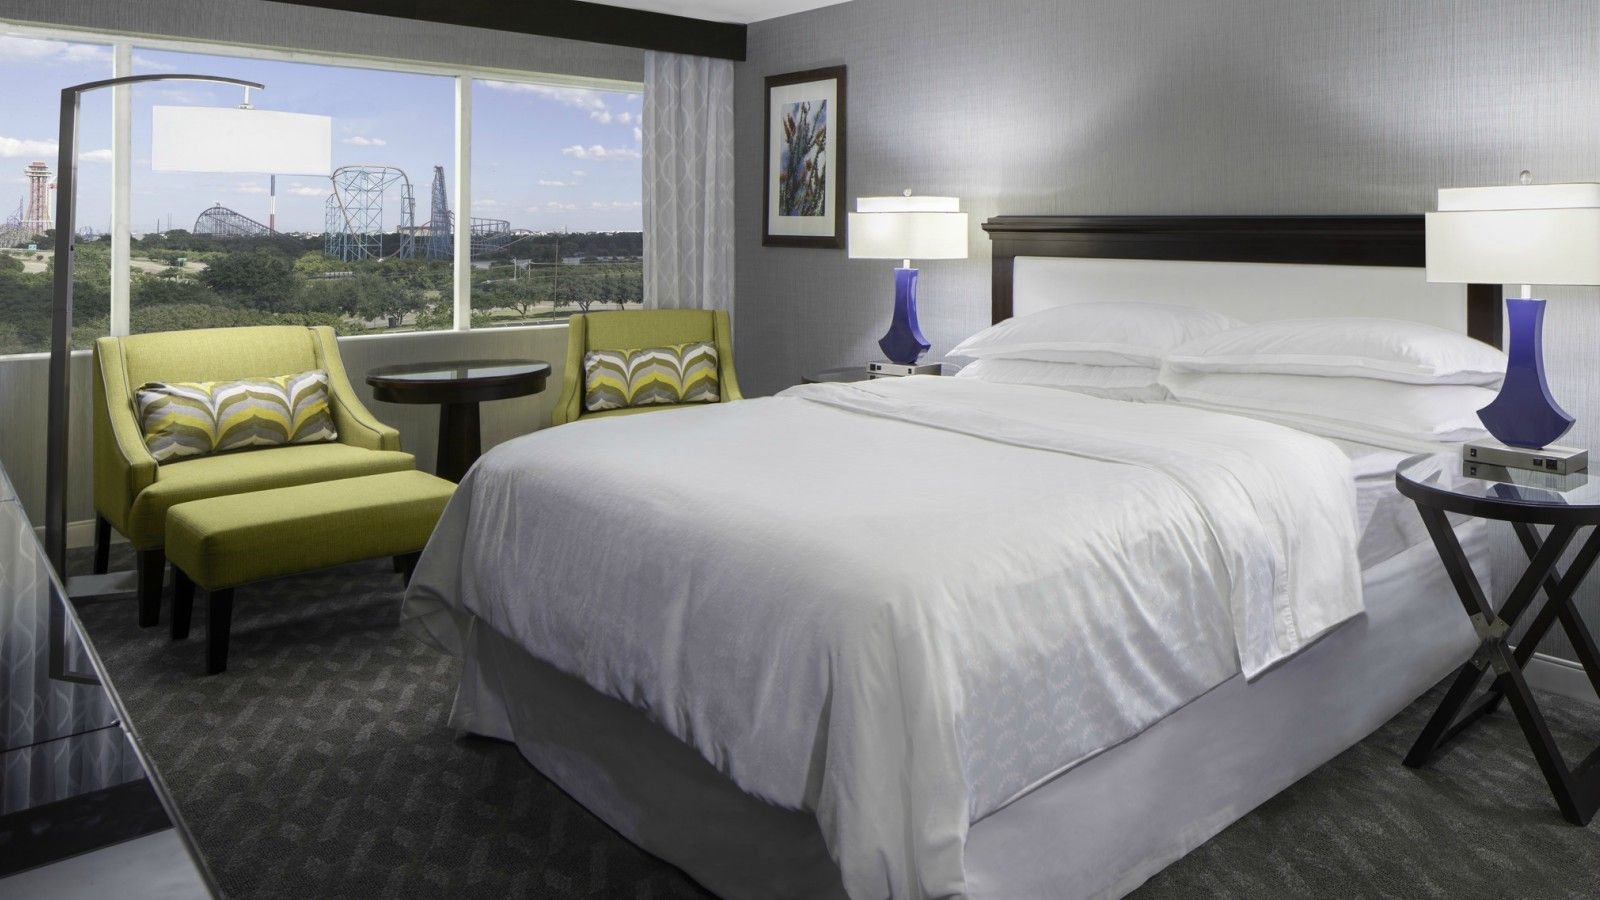 Sheraton Arlington Hotel - Guestroom Renovation